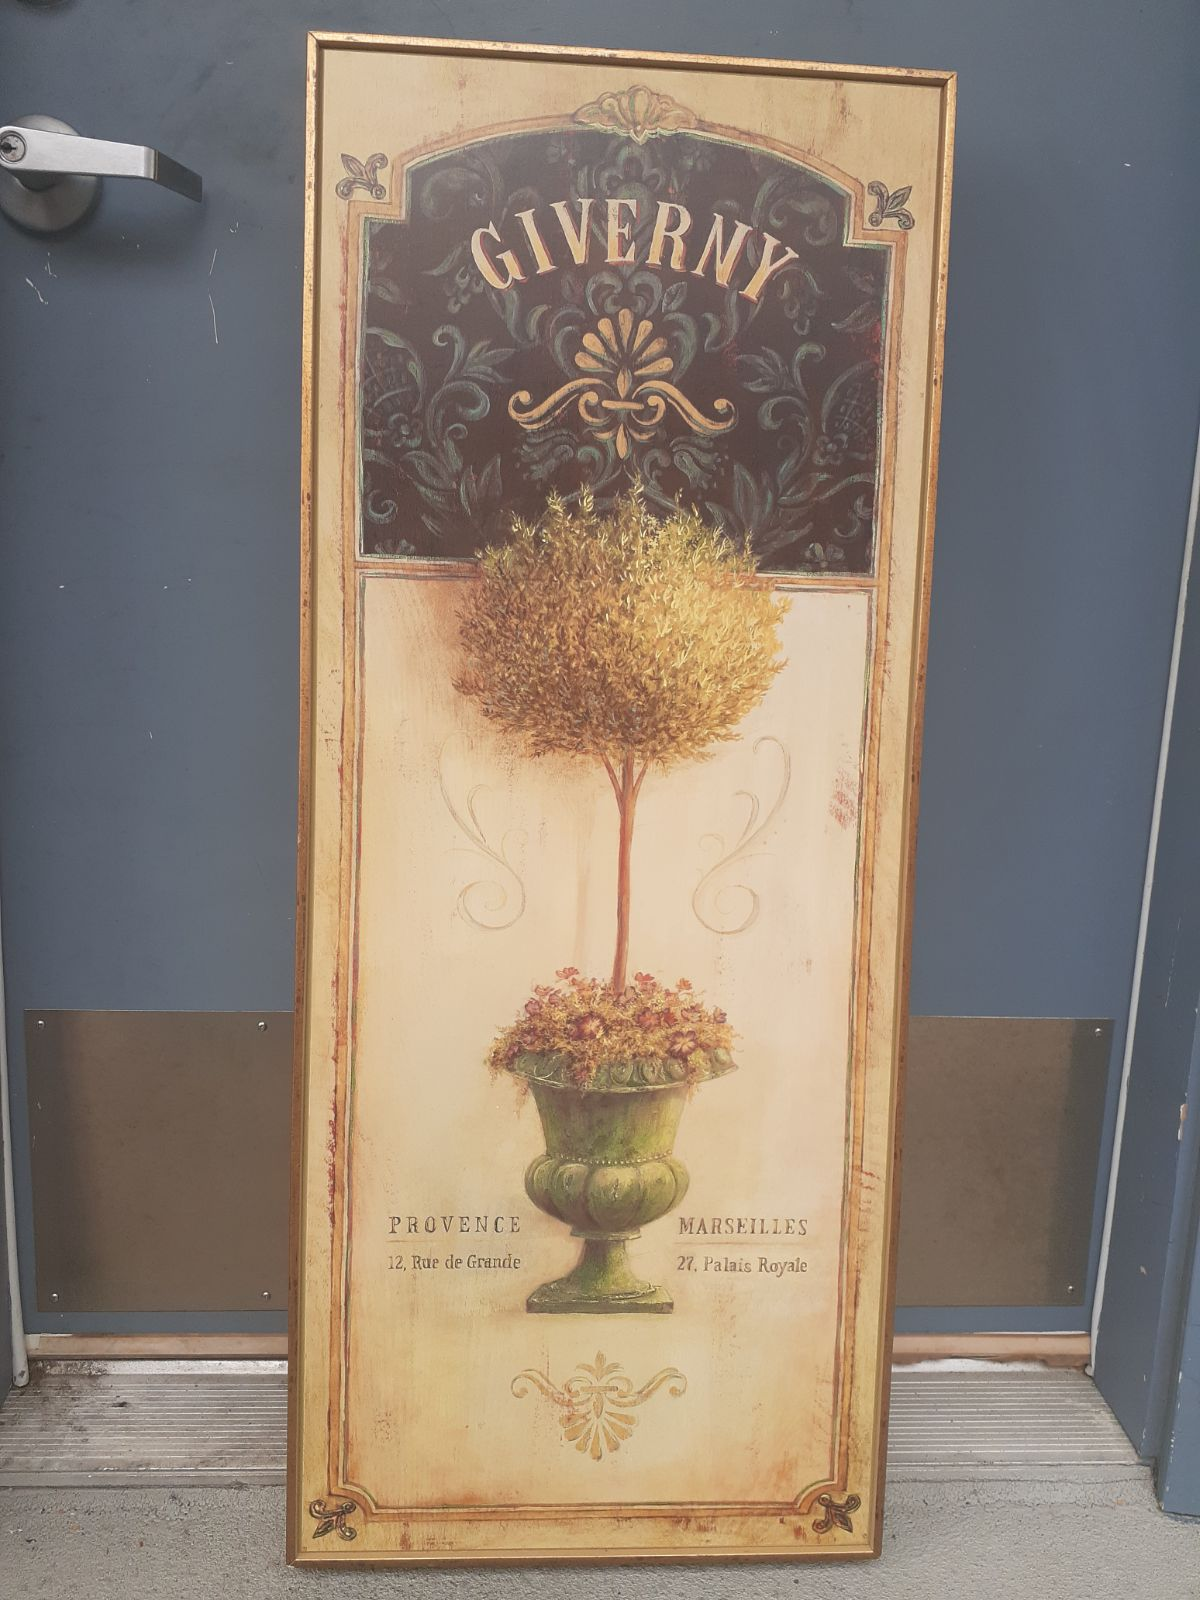 Giverny wood lithograph on wood frame